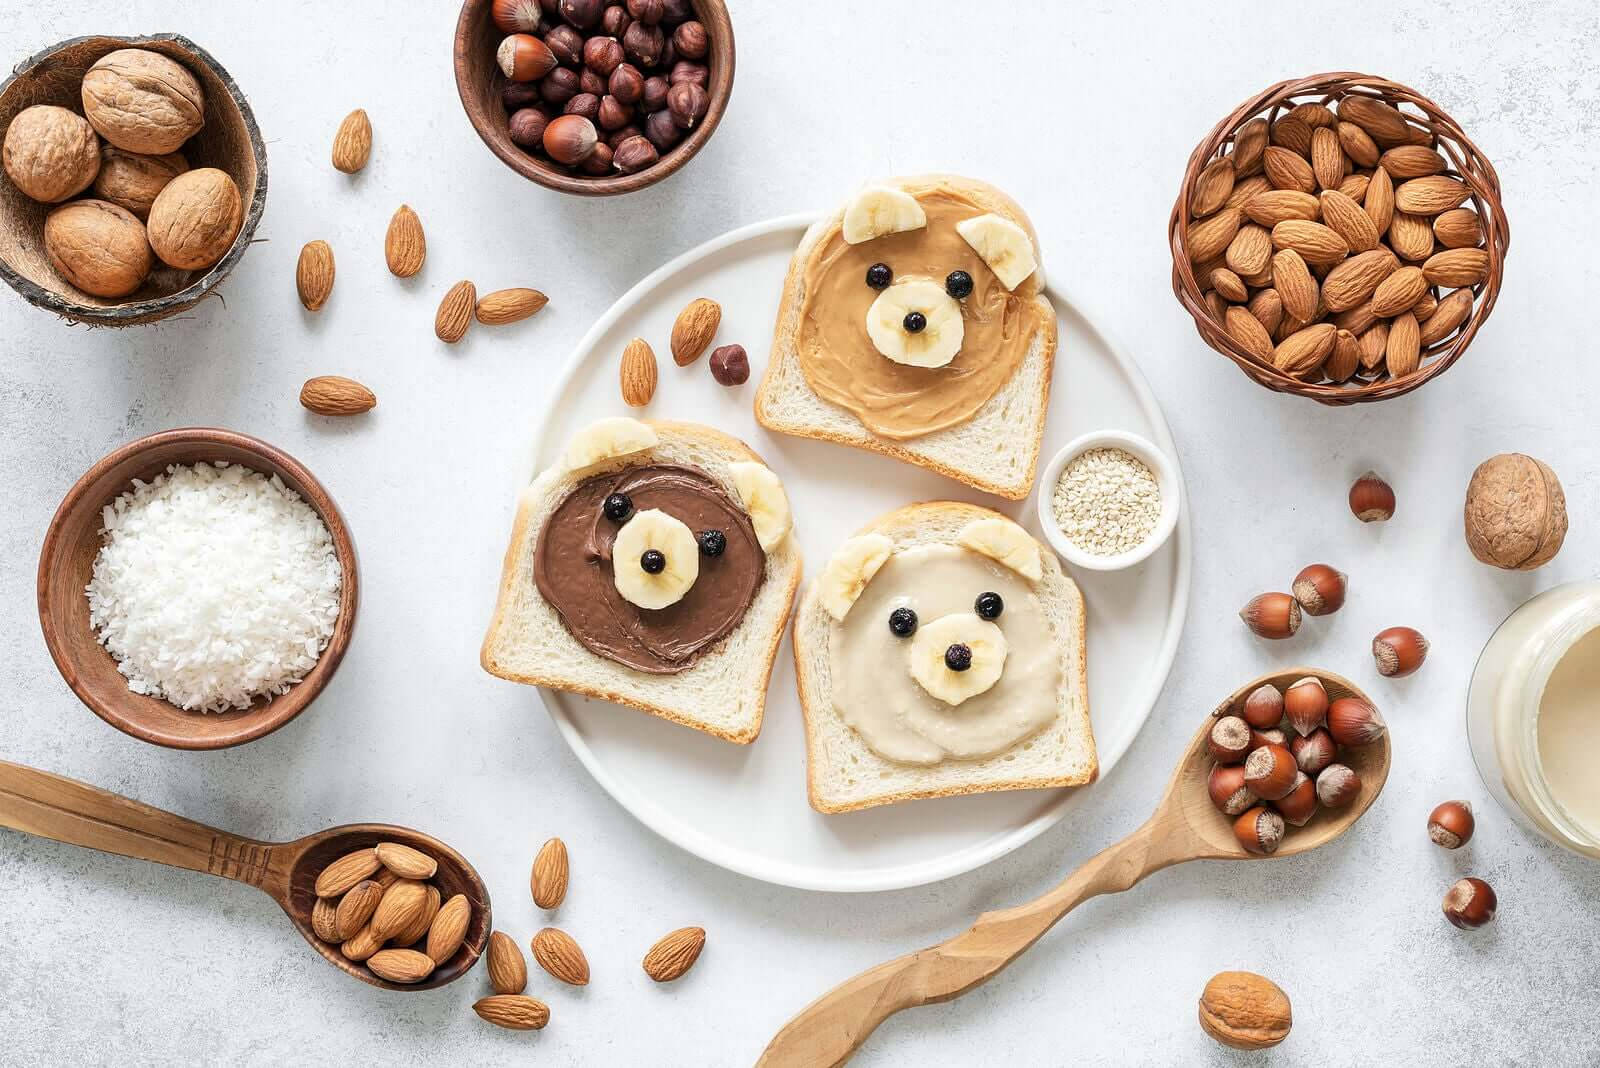 The Health Benefits of Nuts for Children